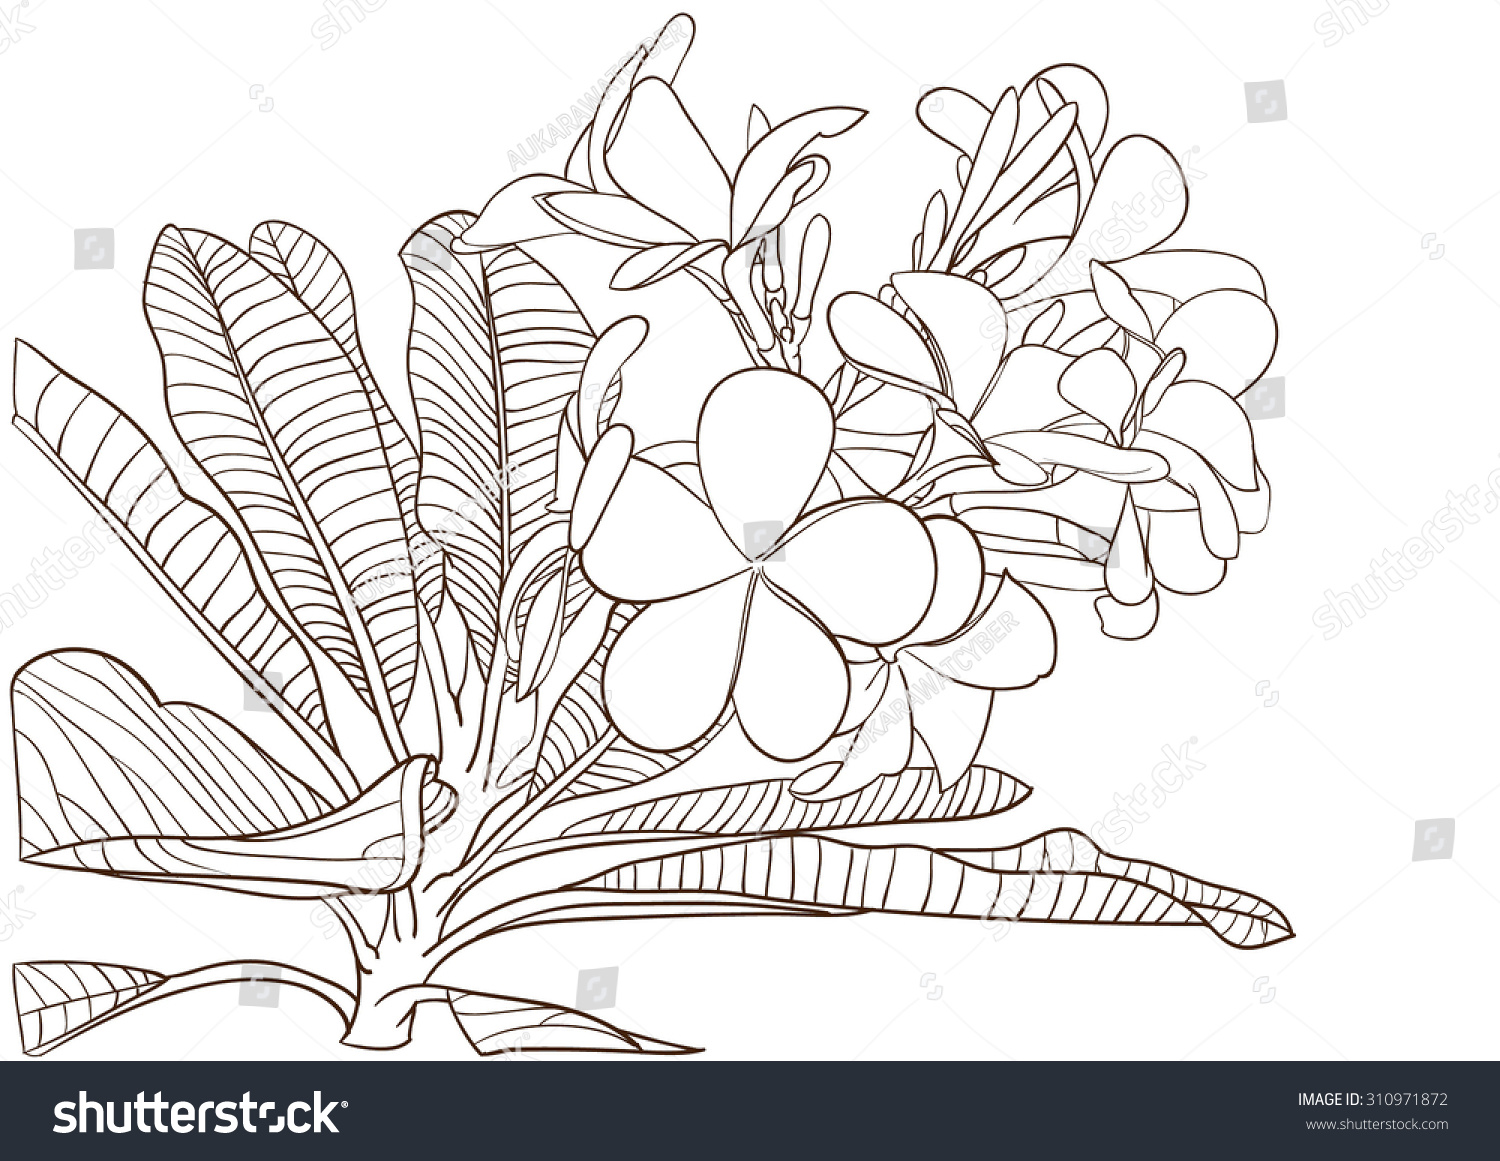 coloring pages of plumerias - photo#20